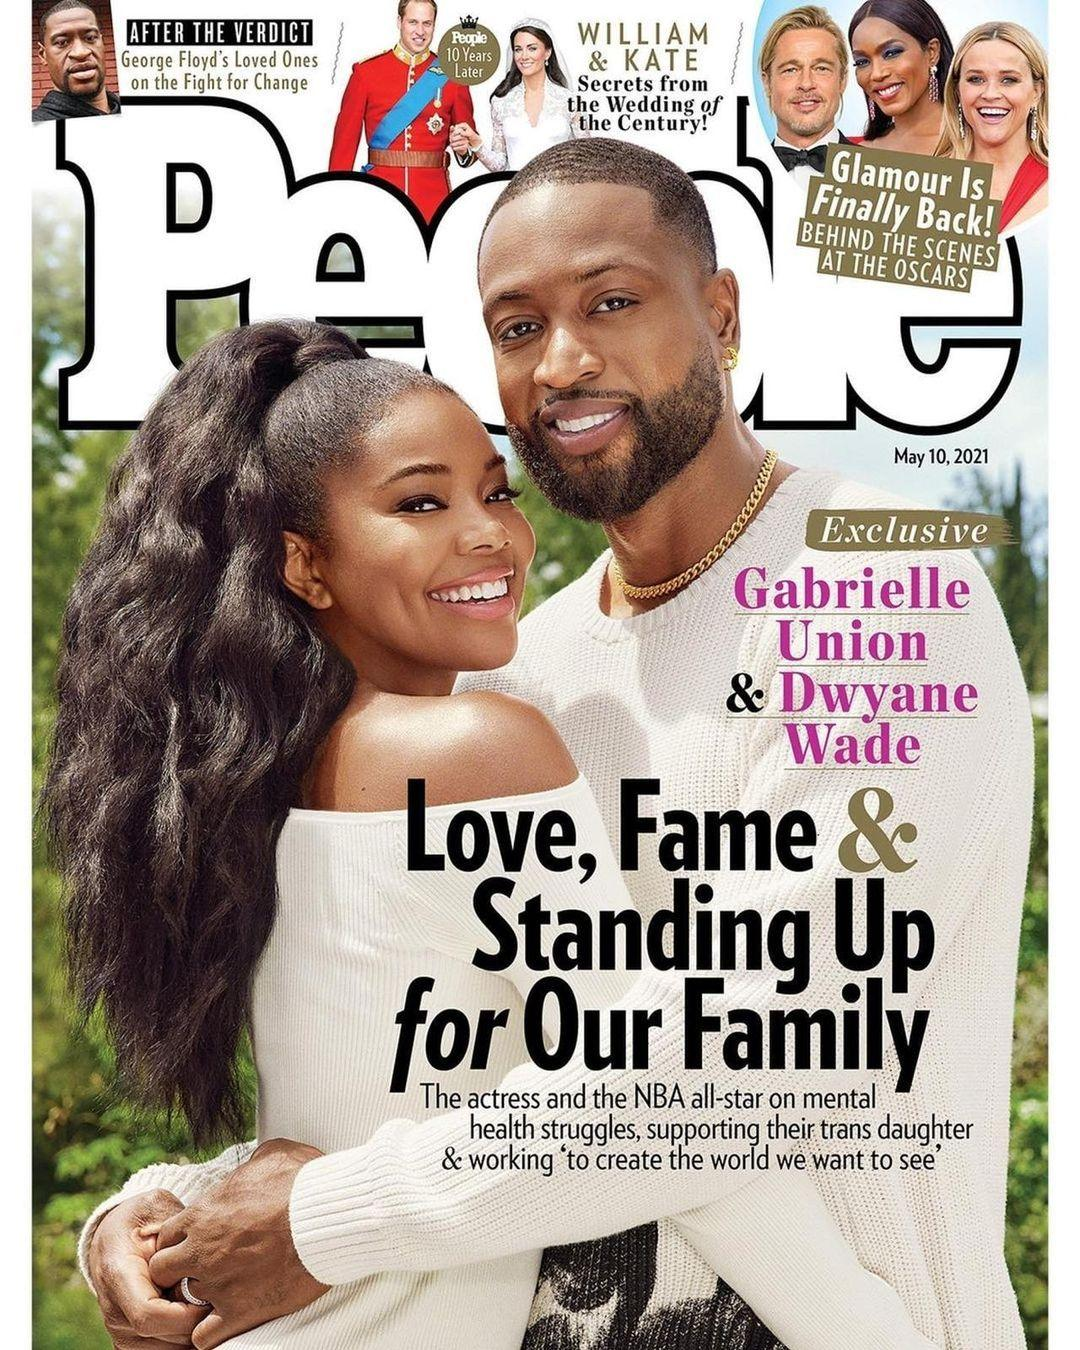 Dwyane Wade & Gabrielle Union on New Book, Love & Standing Up For Family